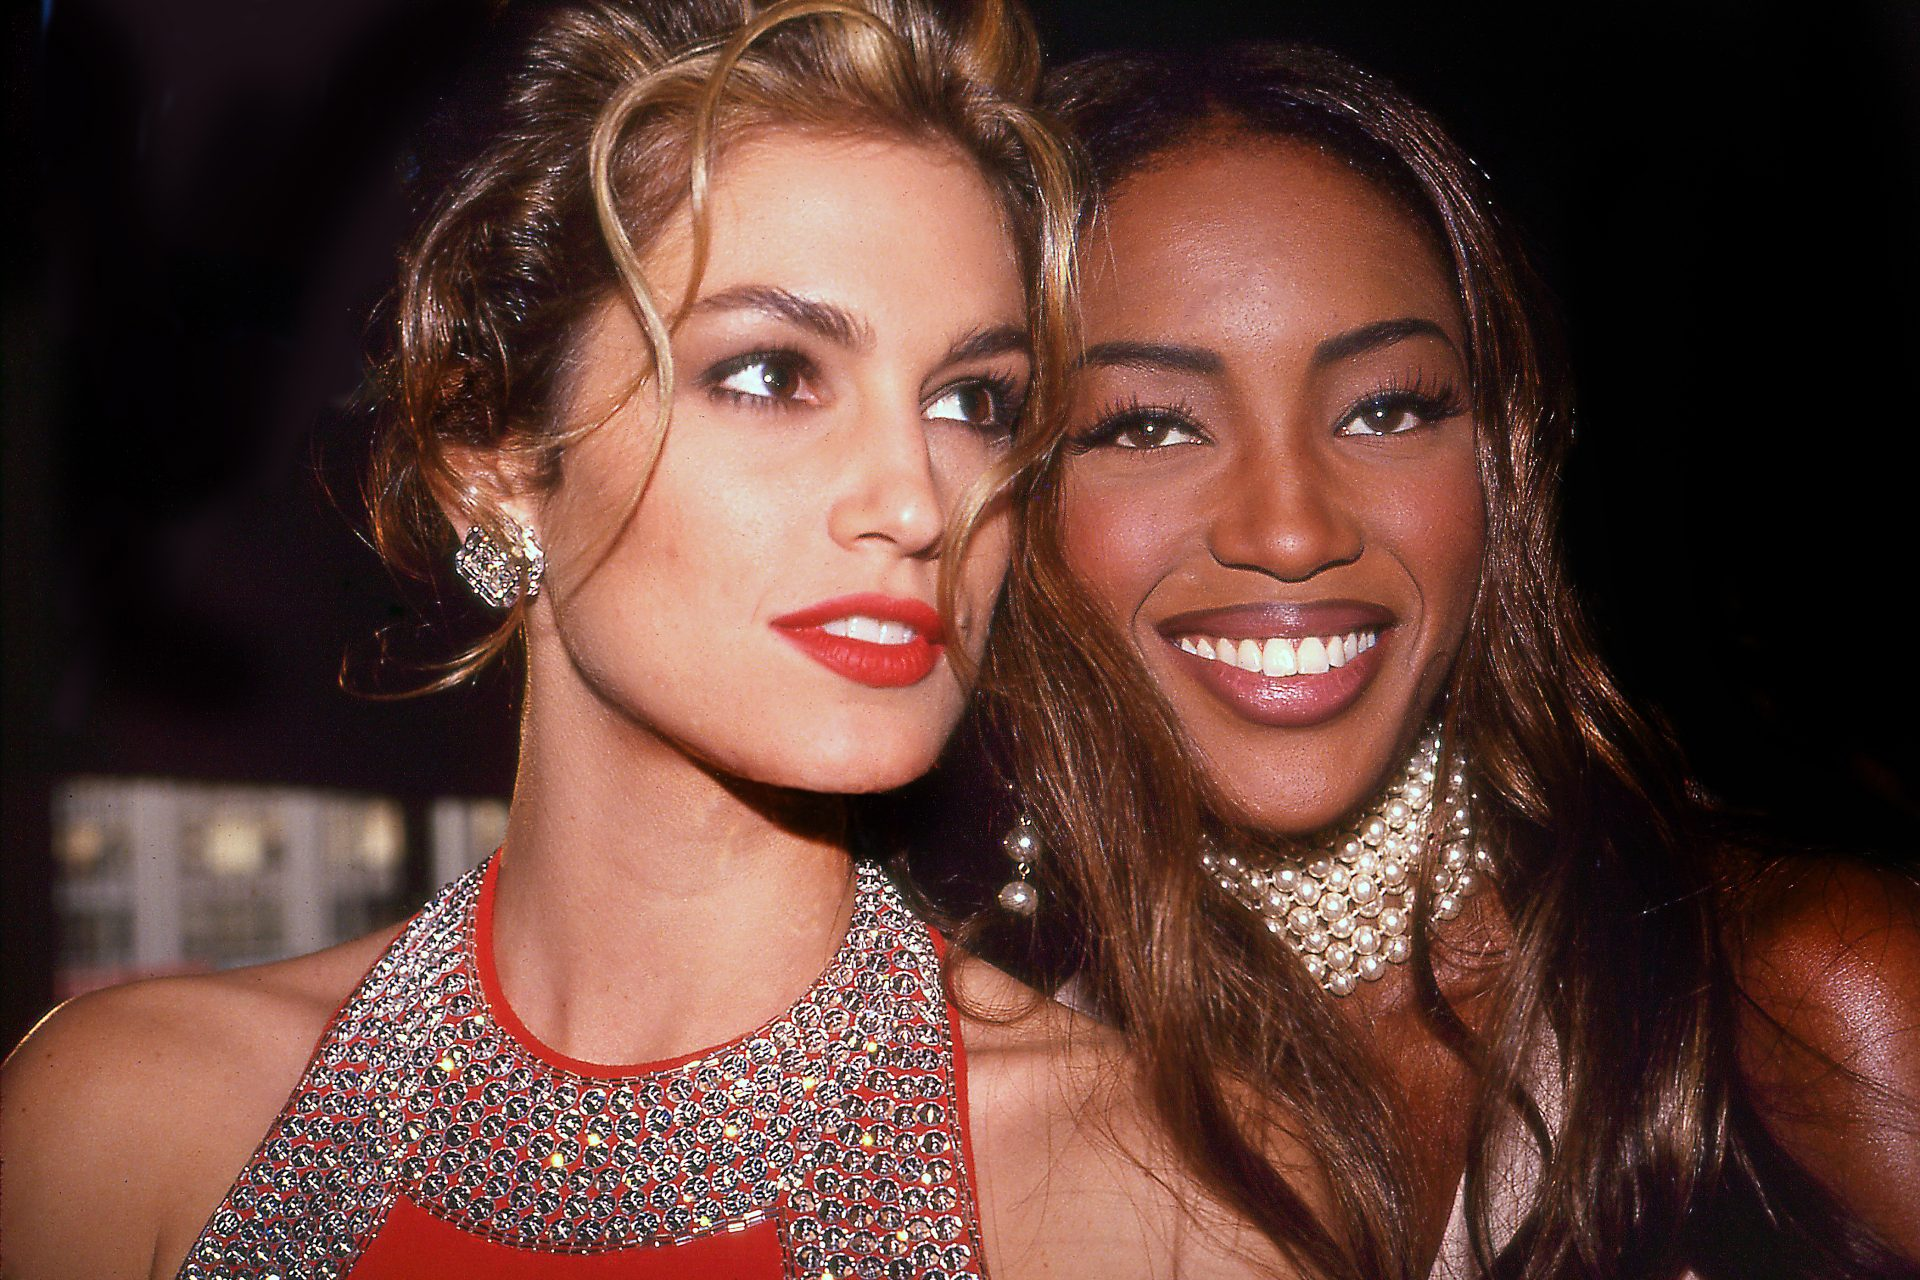 Heidi, Cindy, Naomi… Top models of the 90s, then and now